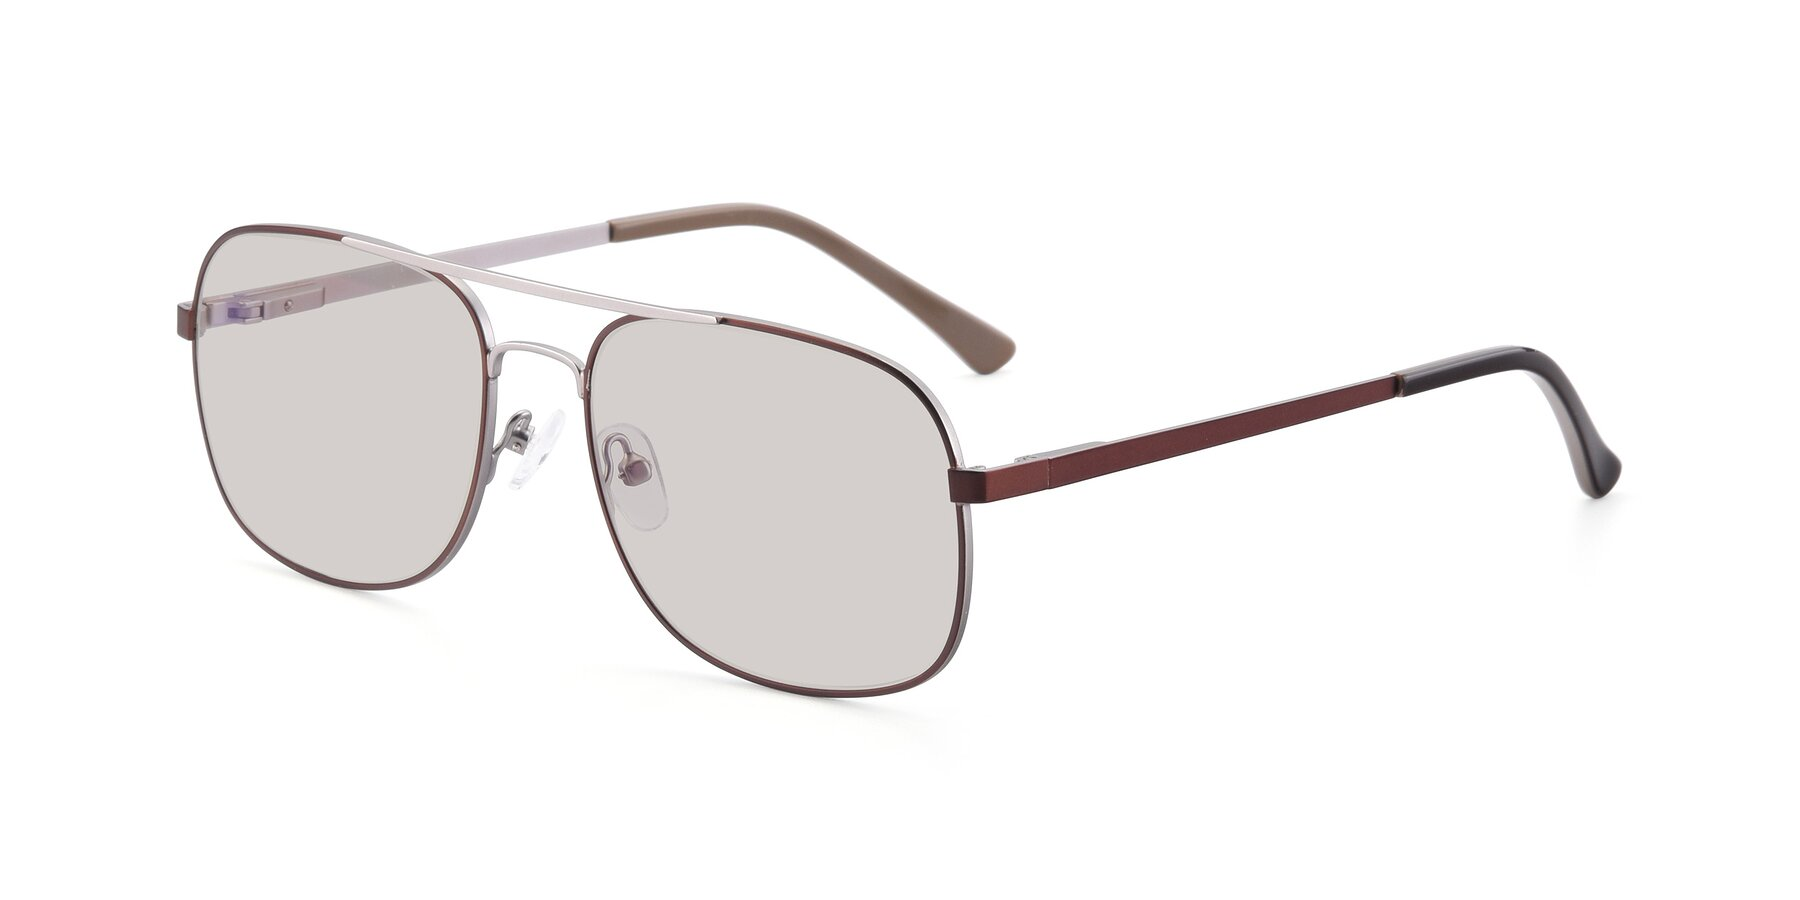 Angle of 9487 in Brown-Silver with Light Brown Tinted Lenses